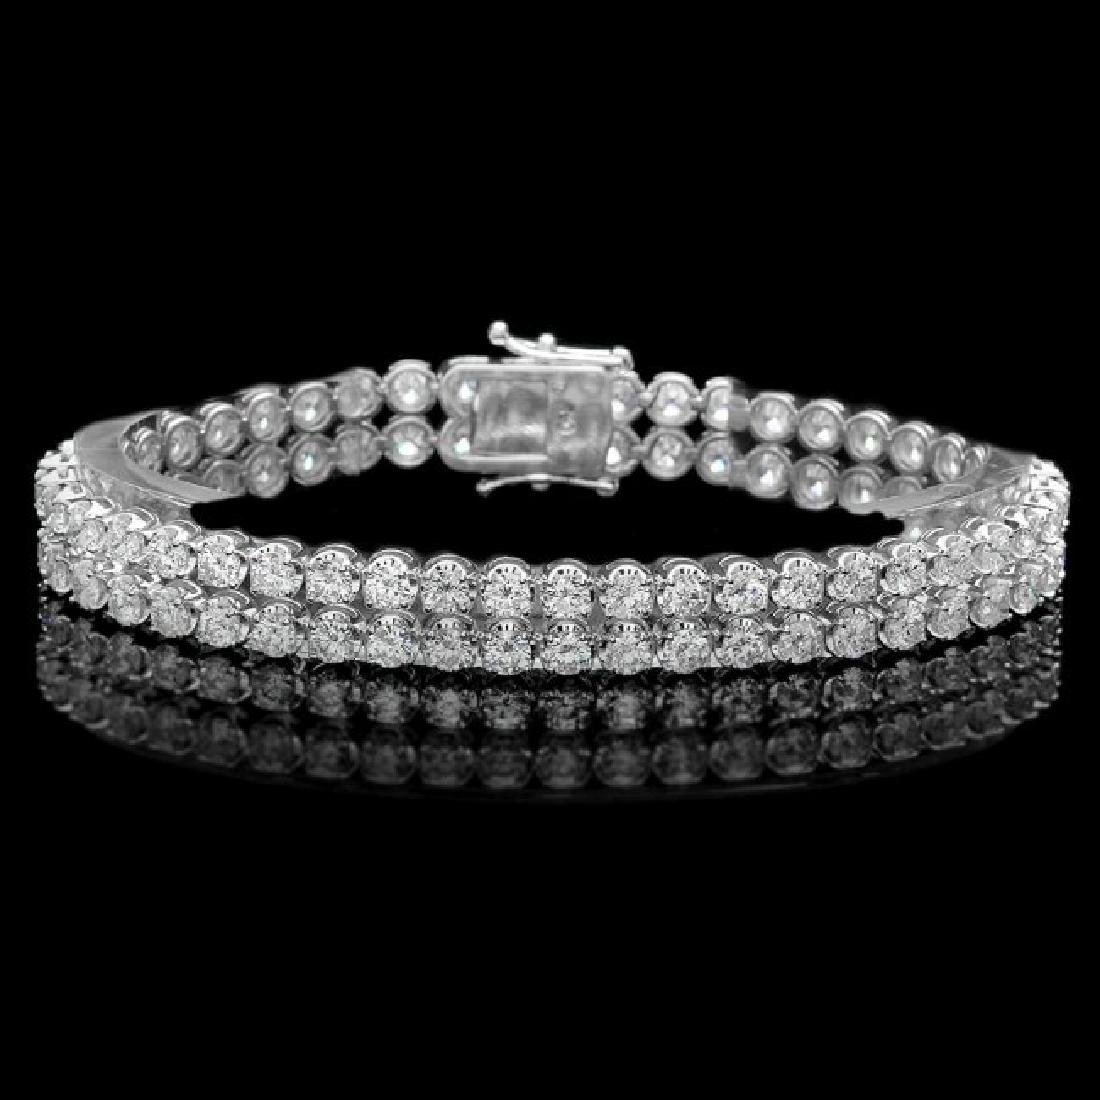 18k White Gold 10.80ct Diamond Bracelet